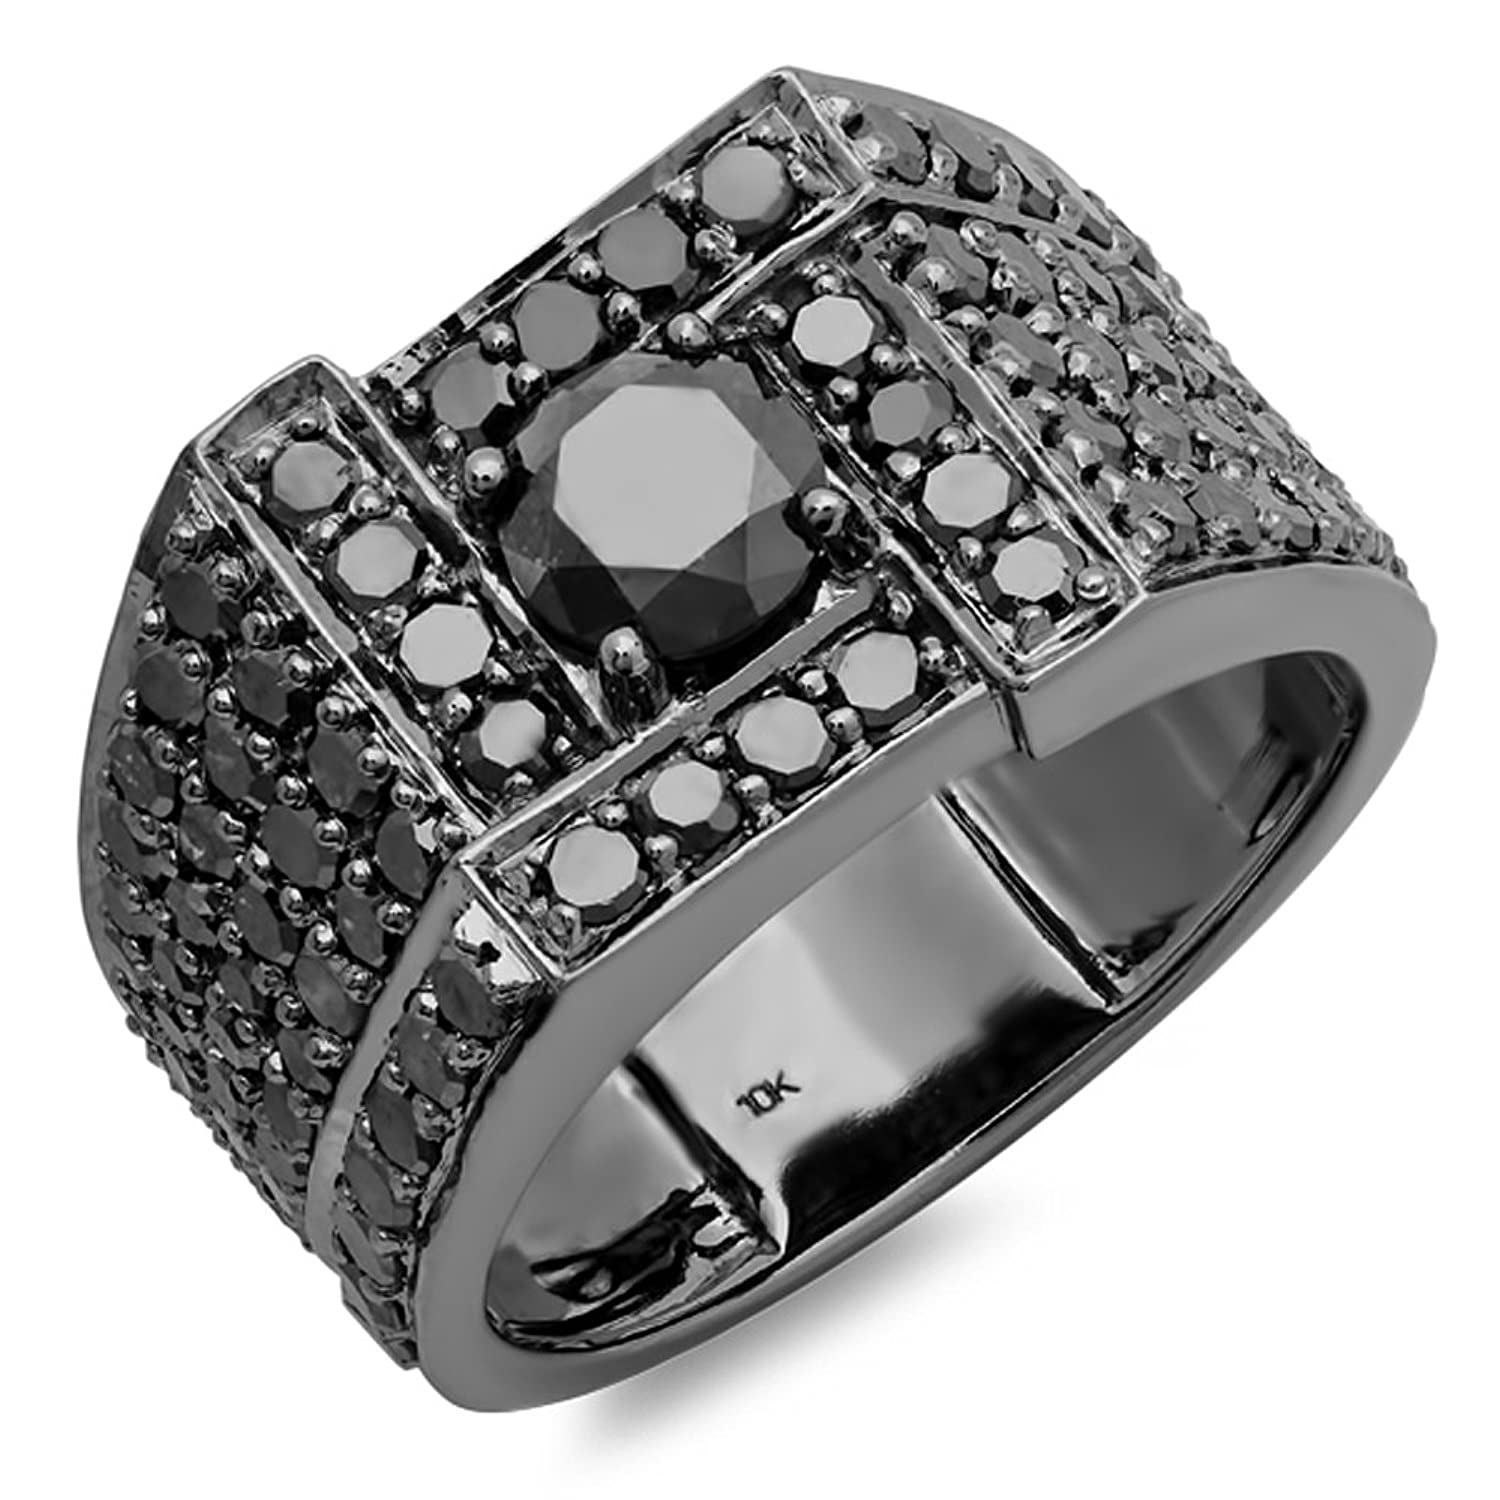 4 50 carat ctw 10k white gold round cut black diamond mens ring